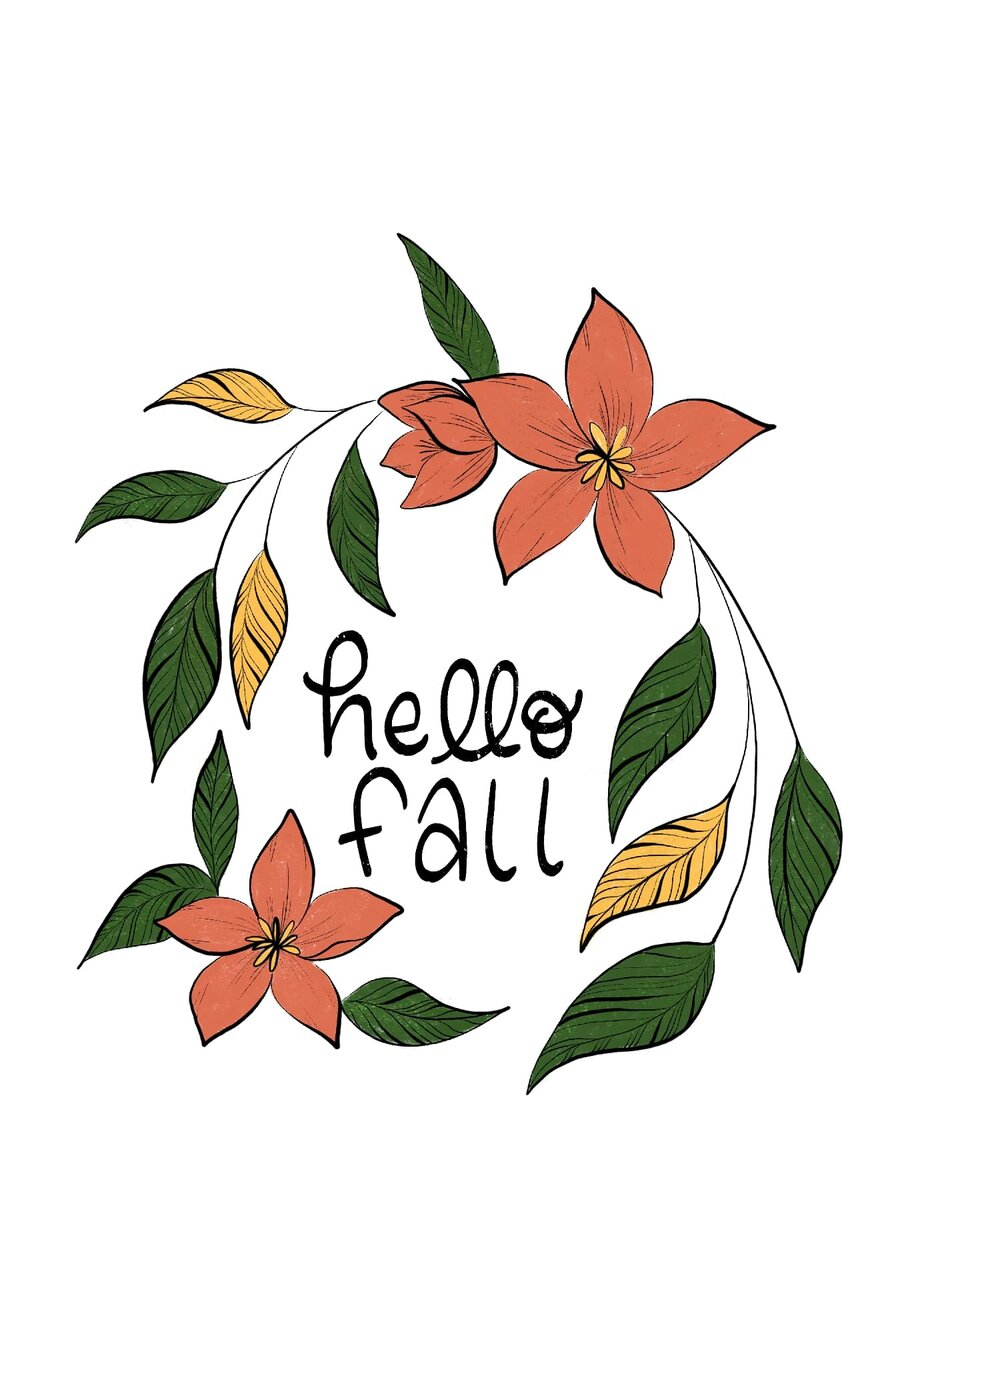 Student project by Dena Wilmette for Skillshare Top Teacher Dylan Mierzwinski's class,  Illustration Practice: Lettering & Florals With Adobe Fresco